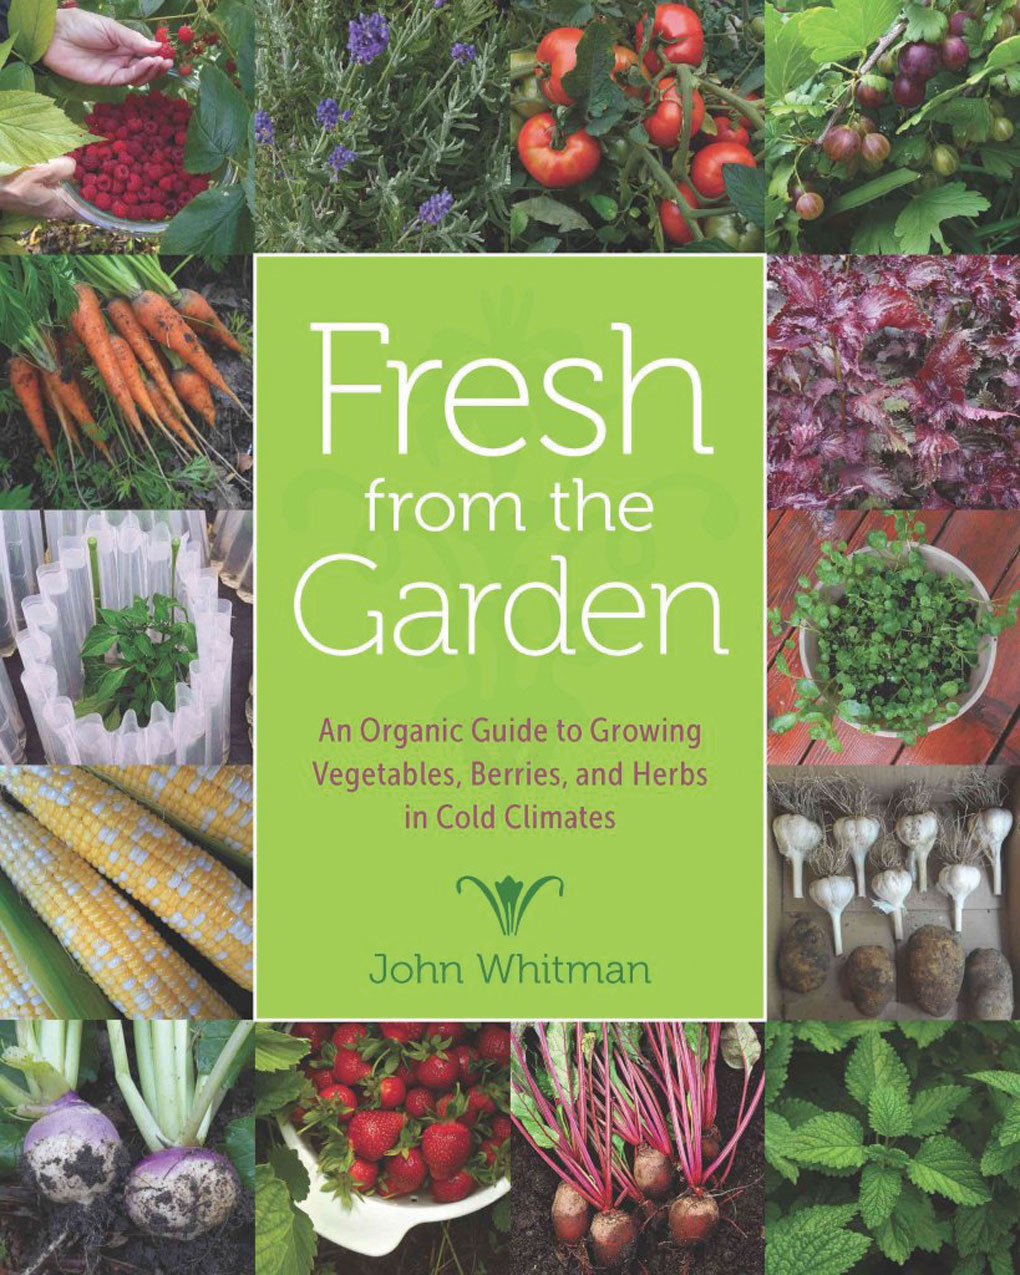 An image of the front cover of John Whitman's book Fresh from the Garden.